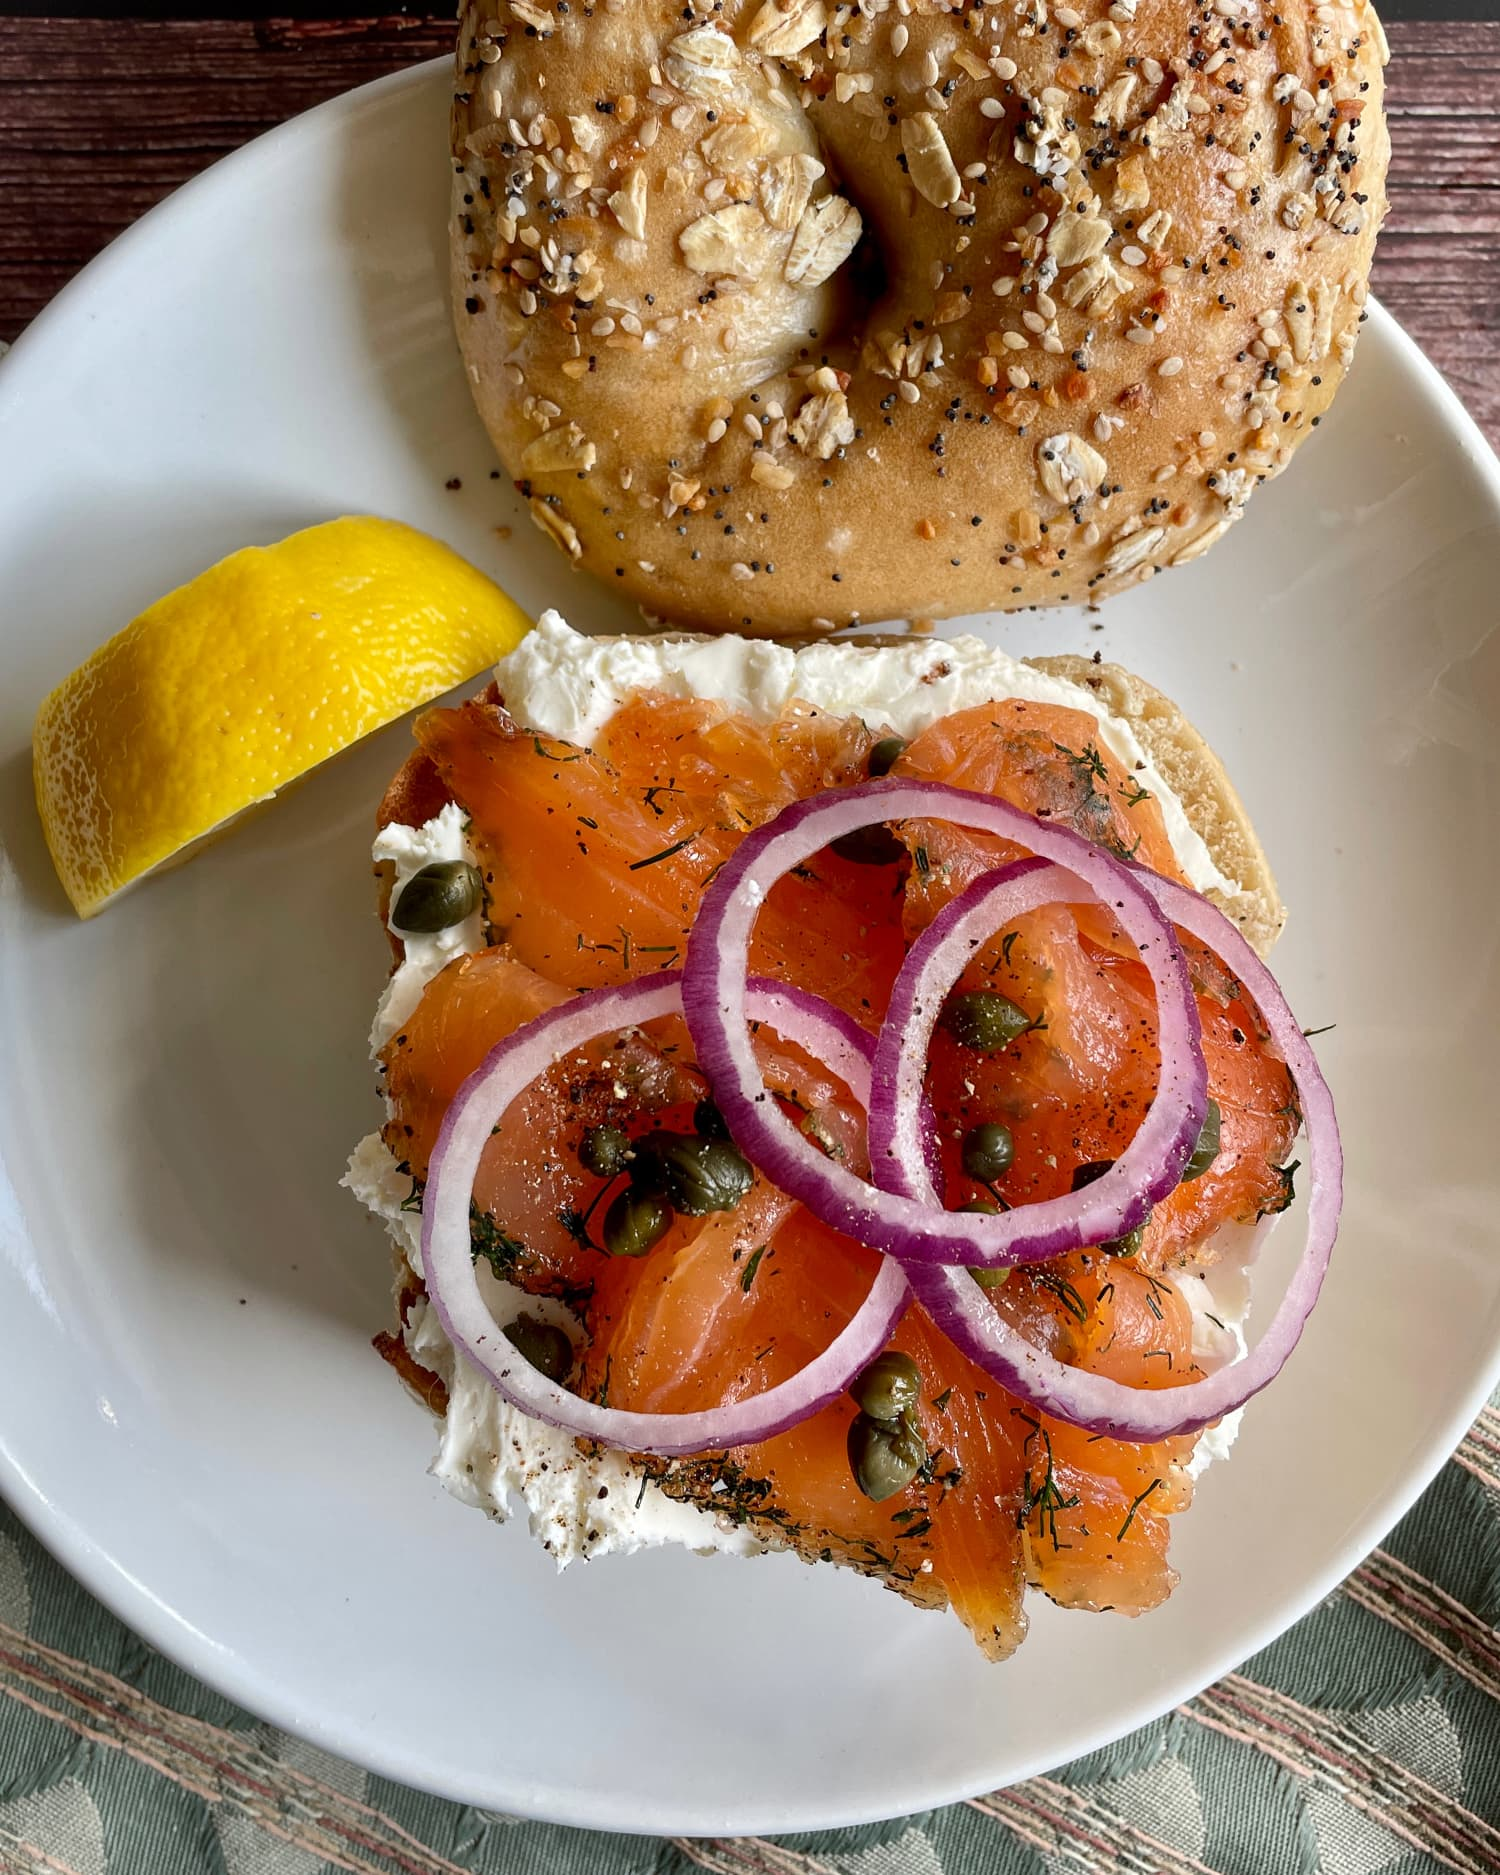 Homemade Lox Is Much Easier than You'd Think